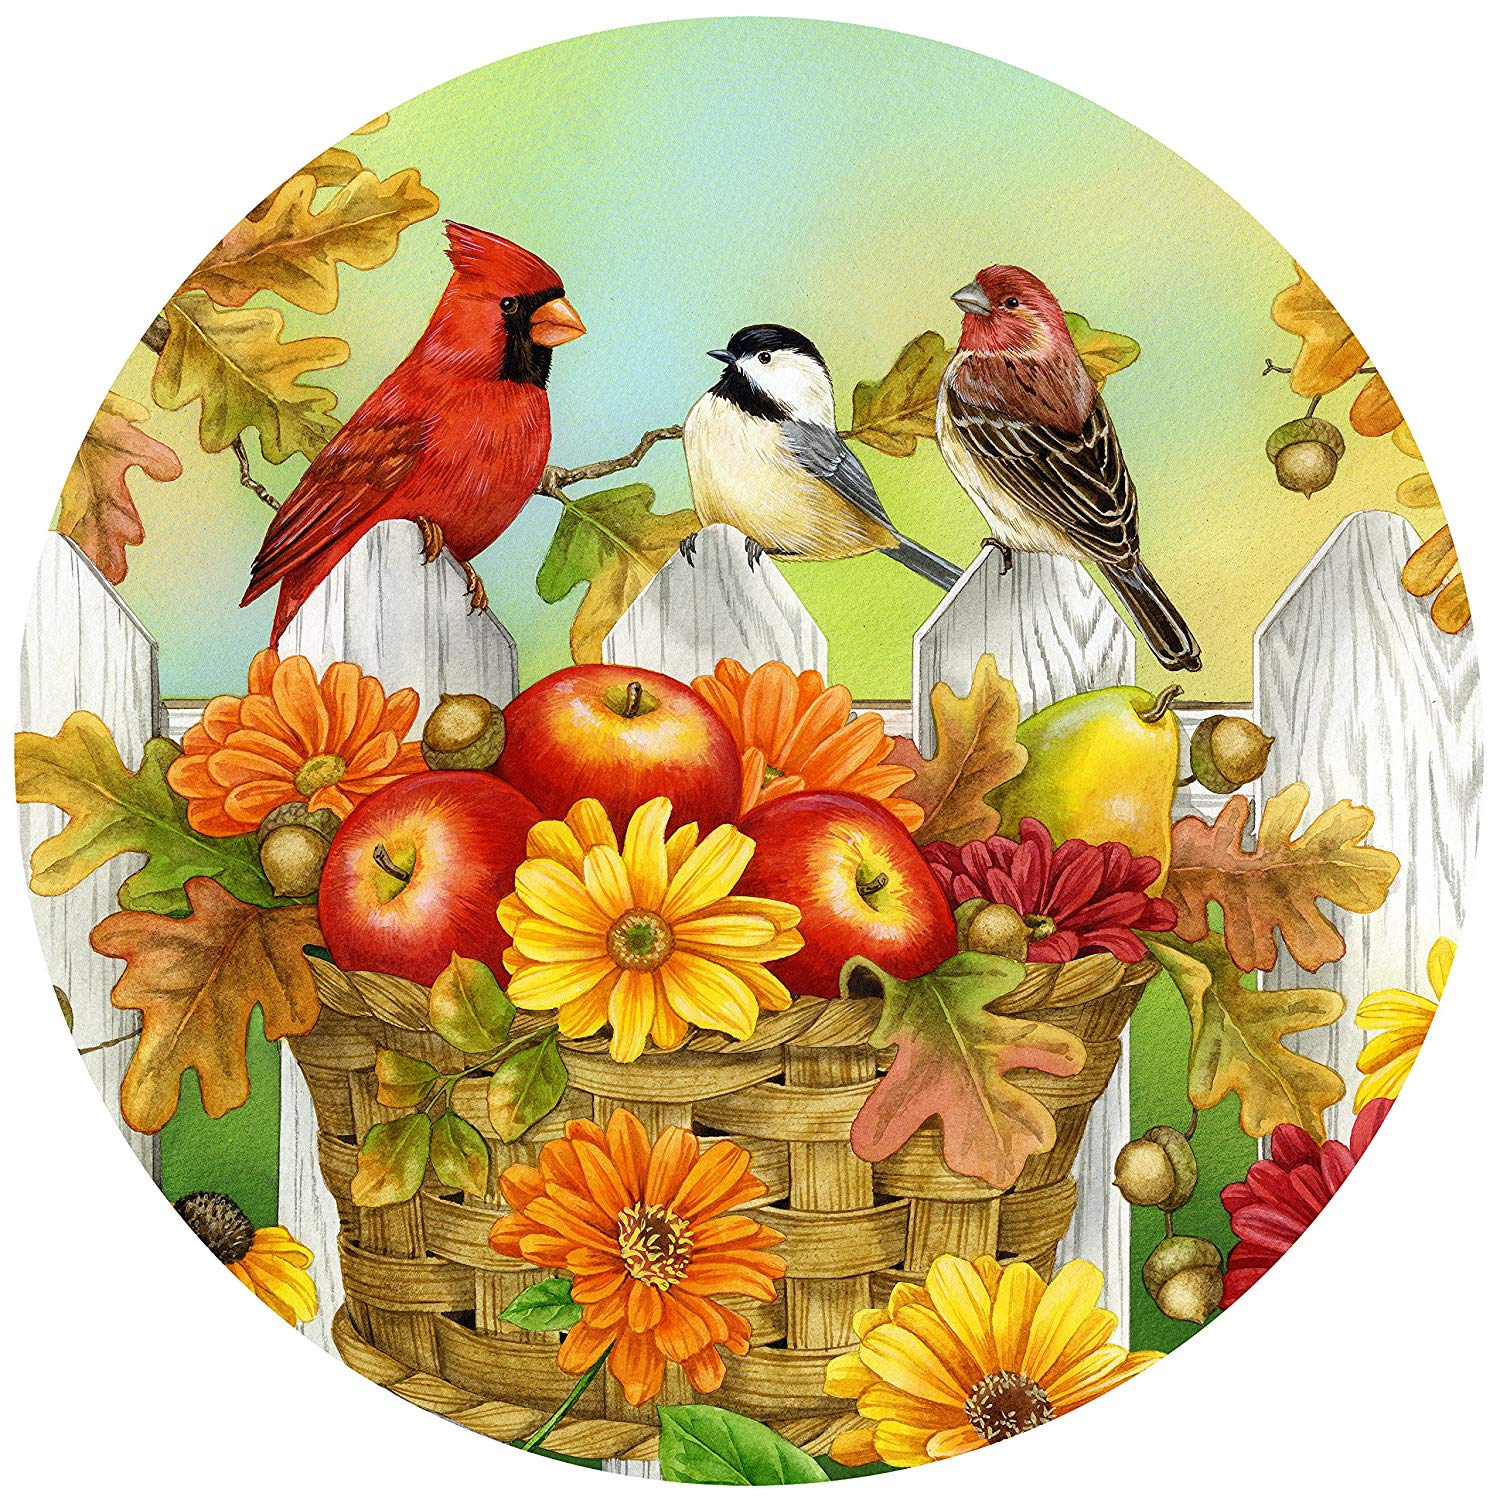 The Jigsaw Puzzle Factory Jane Maday Rounds Apples & Acorns, Harvest Puzzle  Games for Adults and Kids Ages 12 and Up, Made in the USA, 300 Piece, Full.